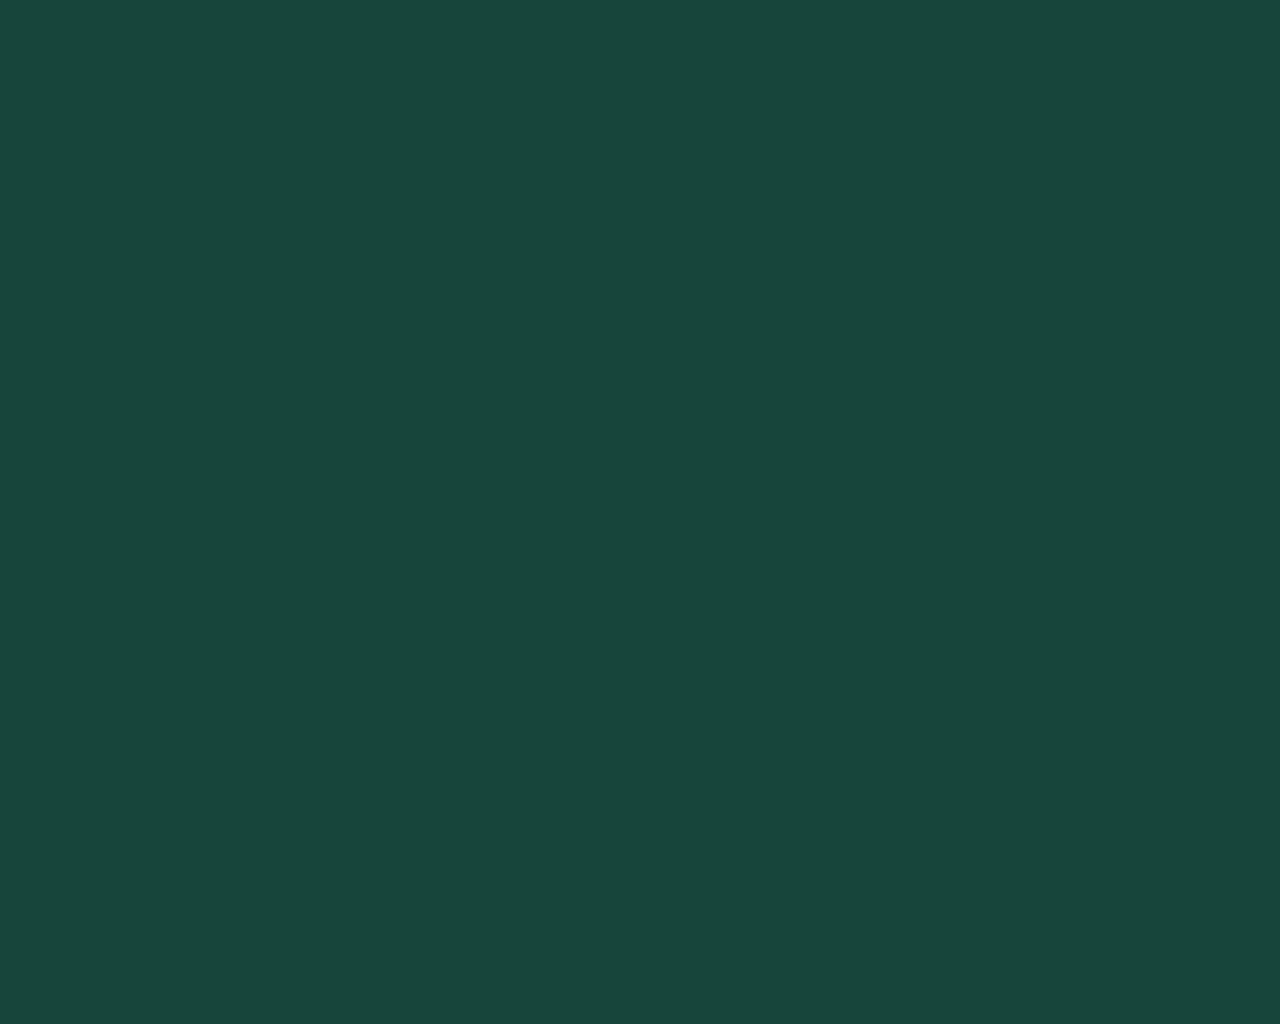 1280x1024 MSU Green Solid Color Background